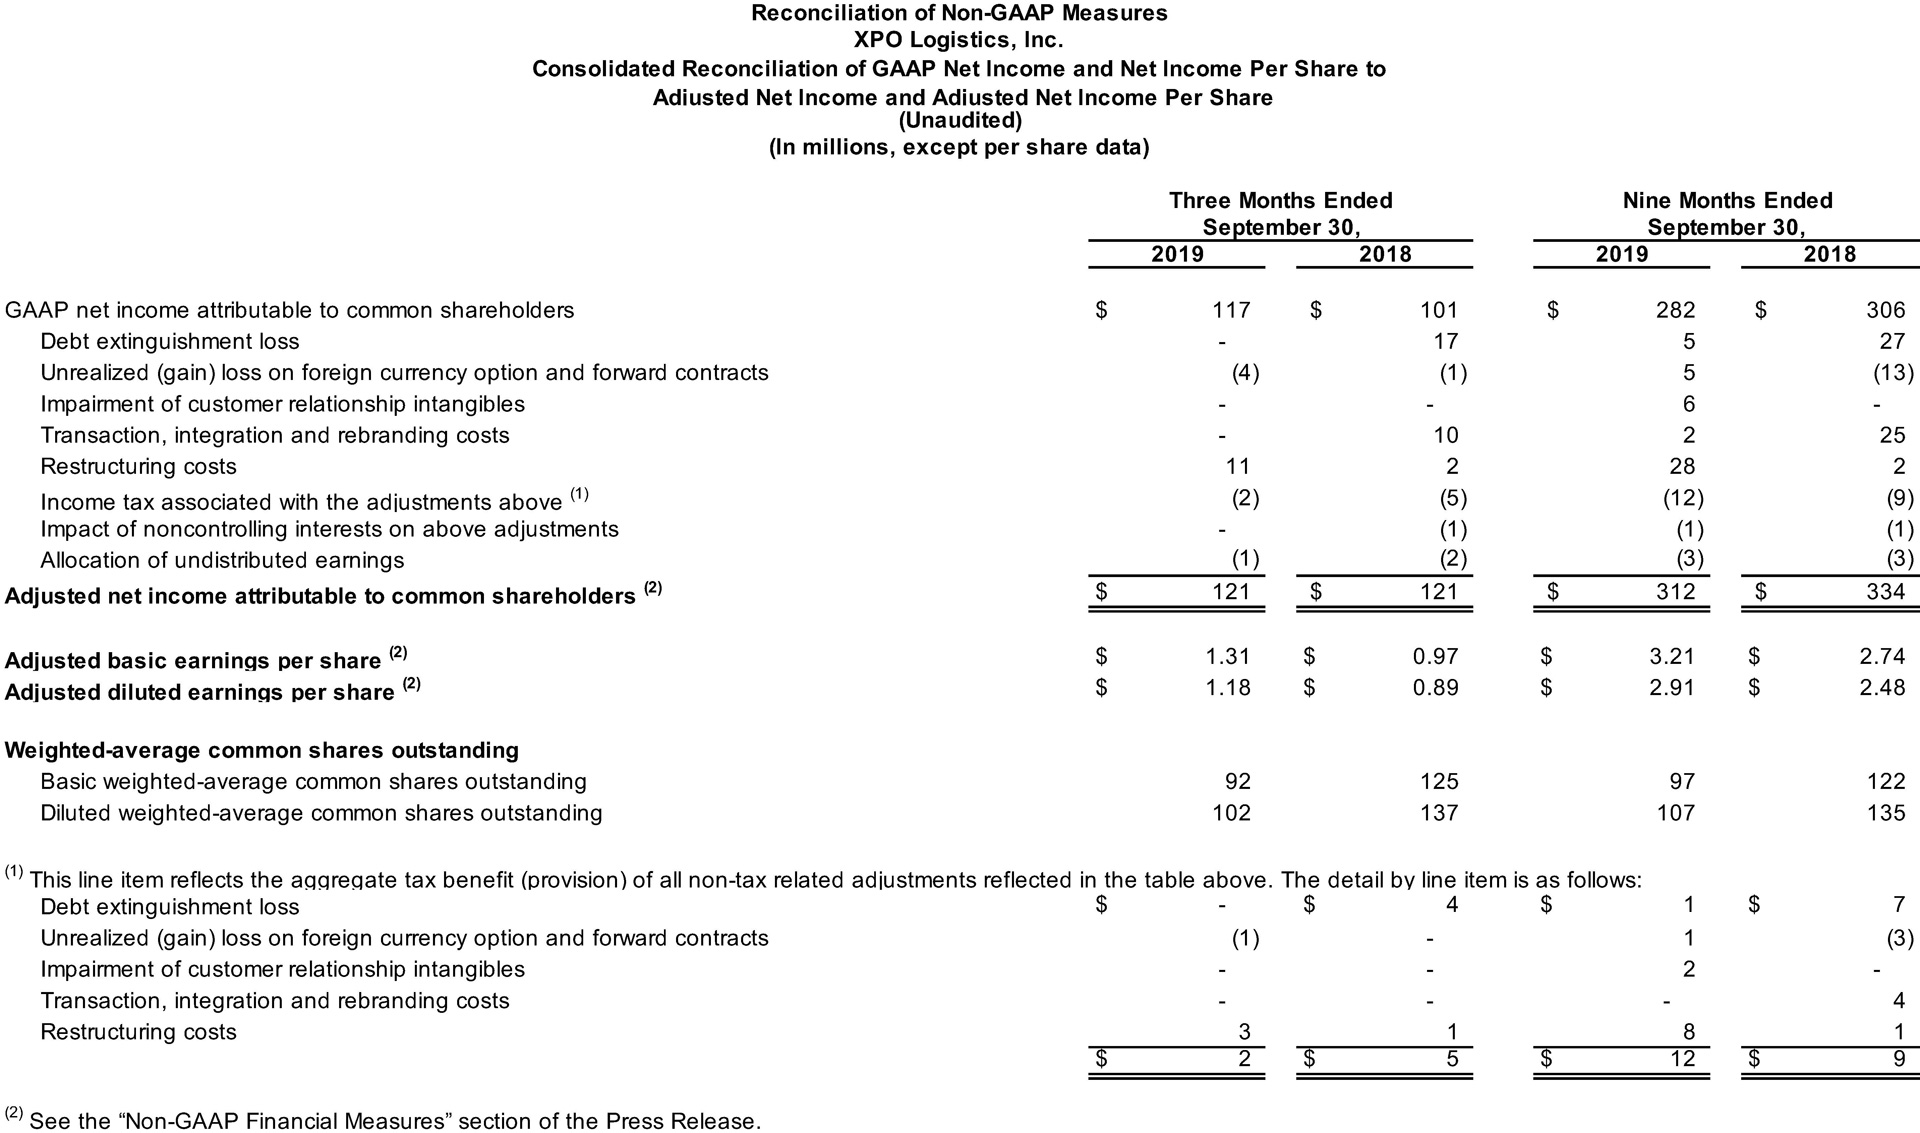 Consolidated Reconciliation of GAAP Net Income and Net Income Per Share to Adjusted Net Income and Adjusted Net Income Per Share